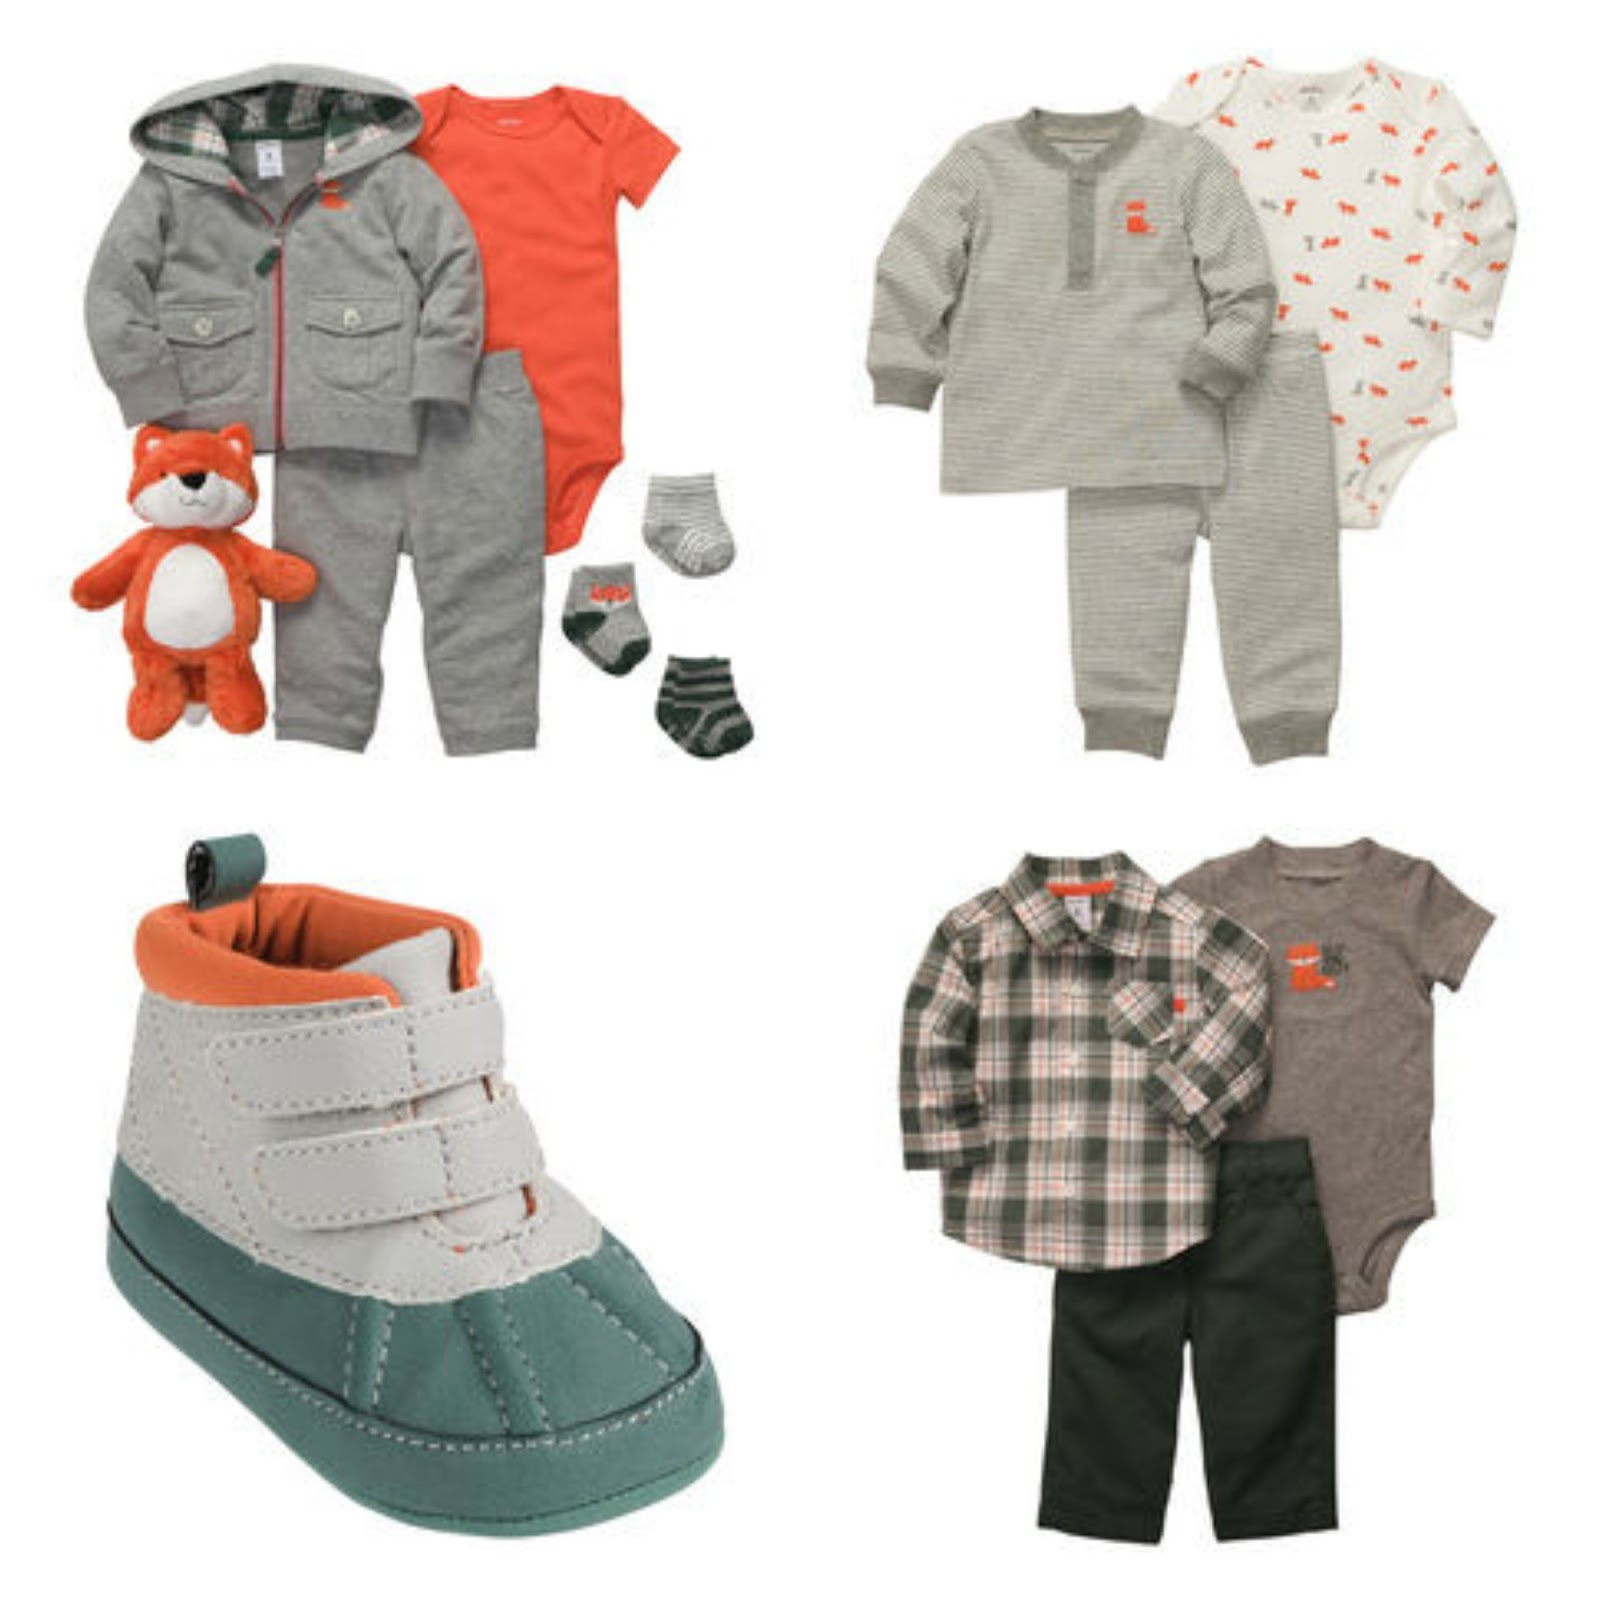 HOW TO DRESS YOUR KIDS WITH THE LATEST TRENDS WITHOUT BREAKING THE